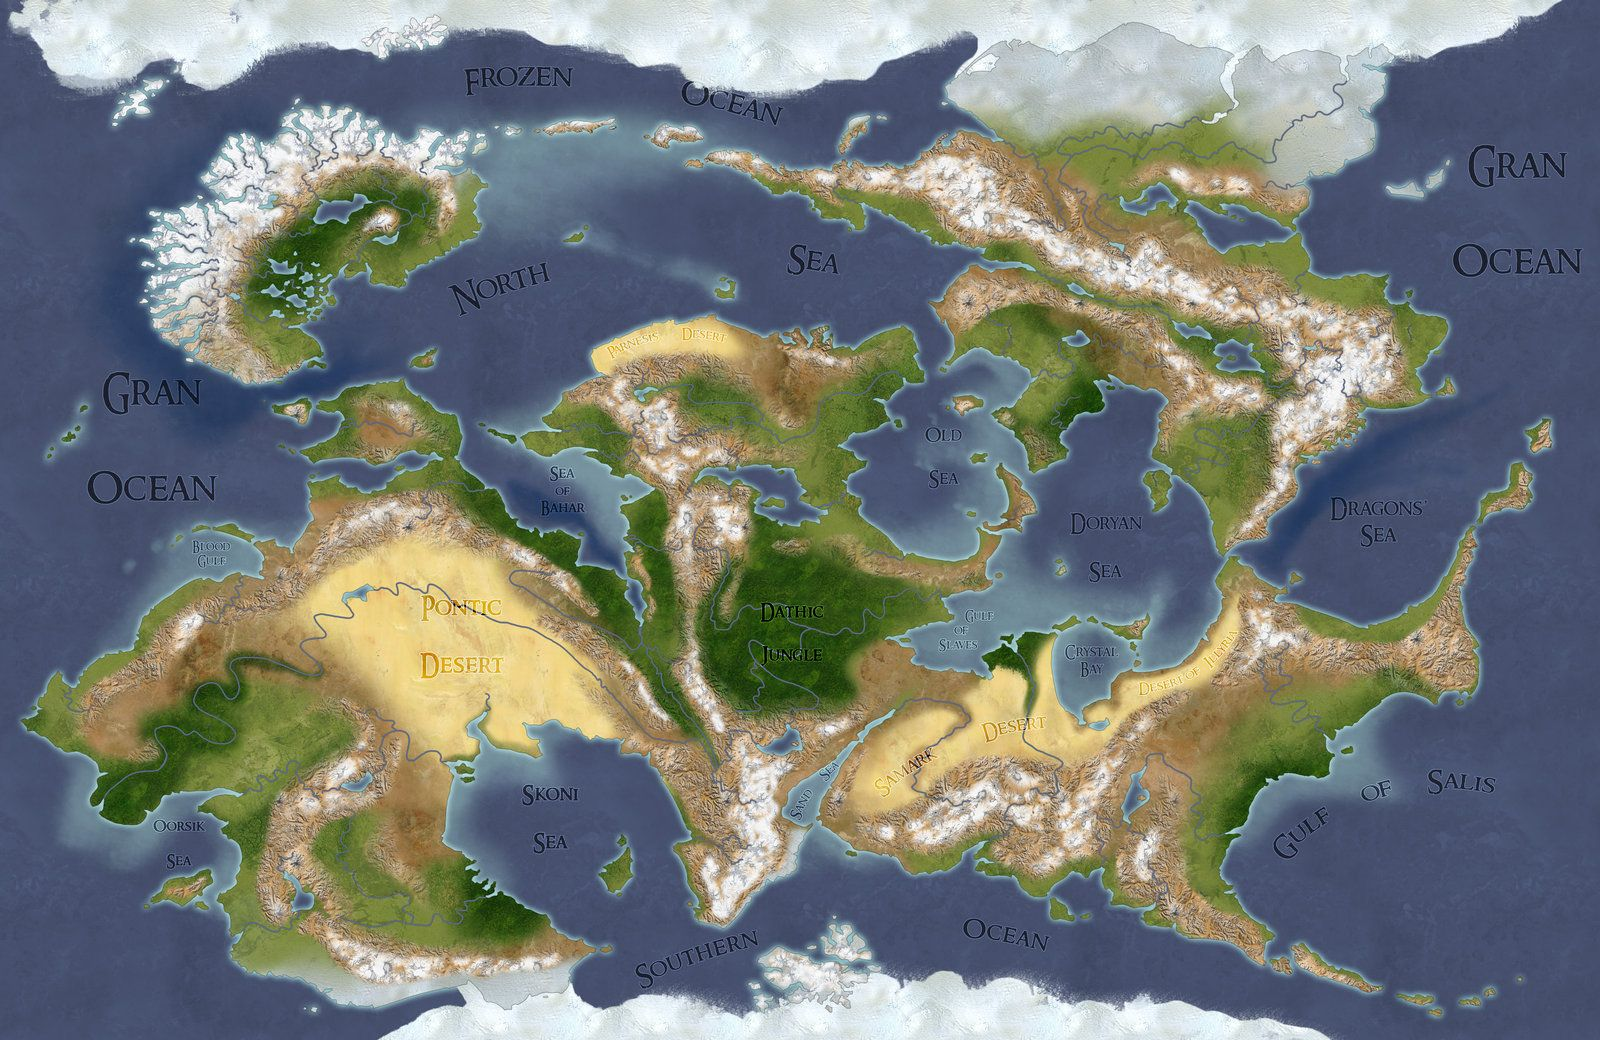 Rpg World Map Generator Original Map by gamera1985.deviantart.on @DeviantArt (With